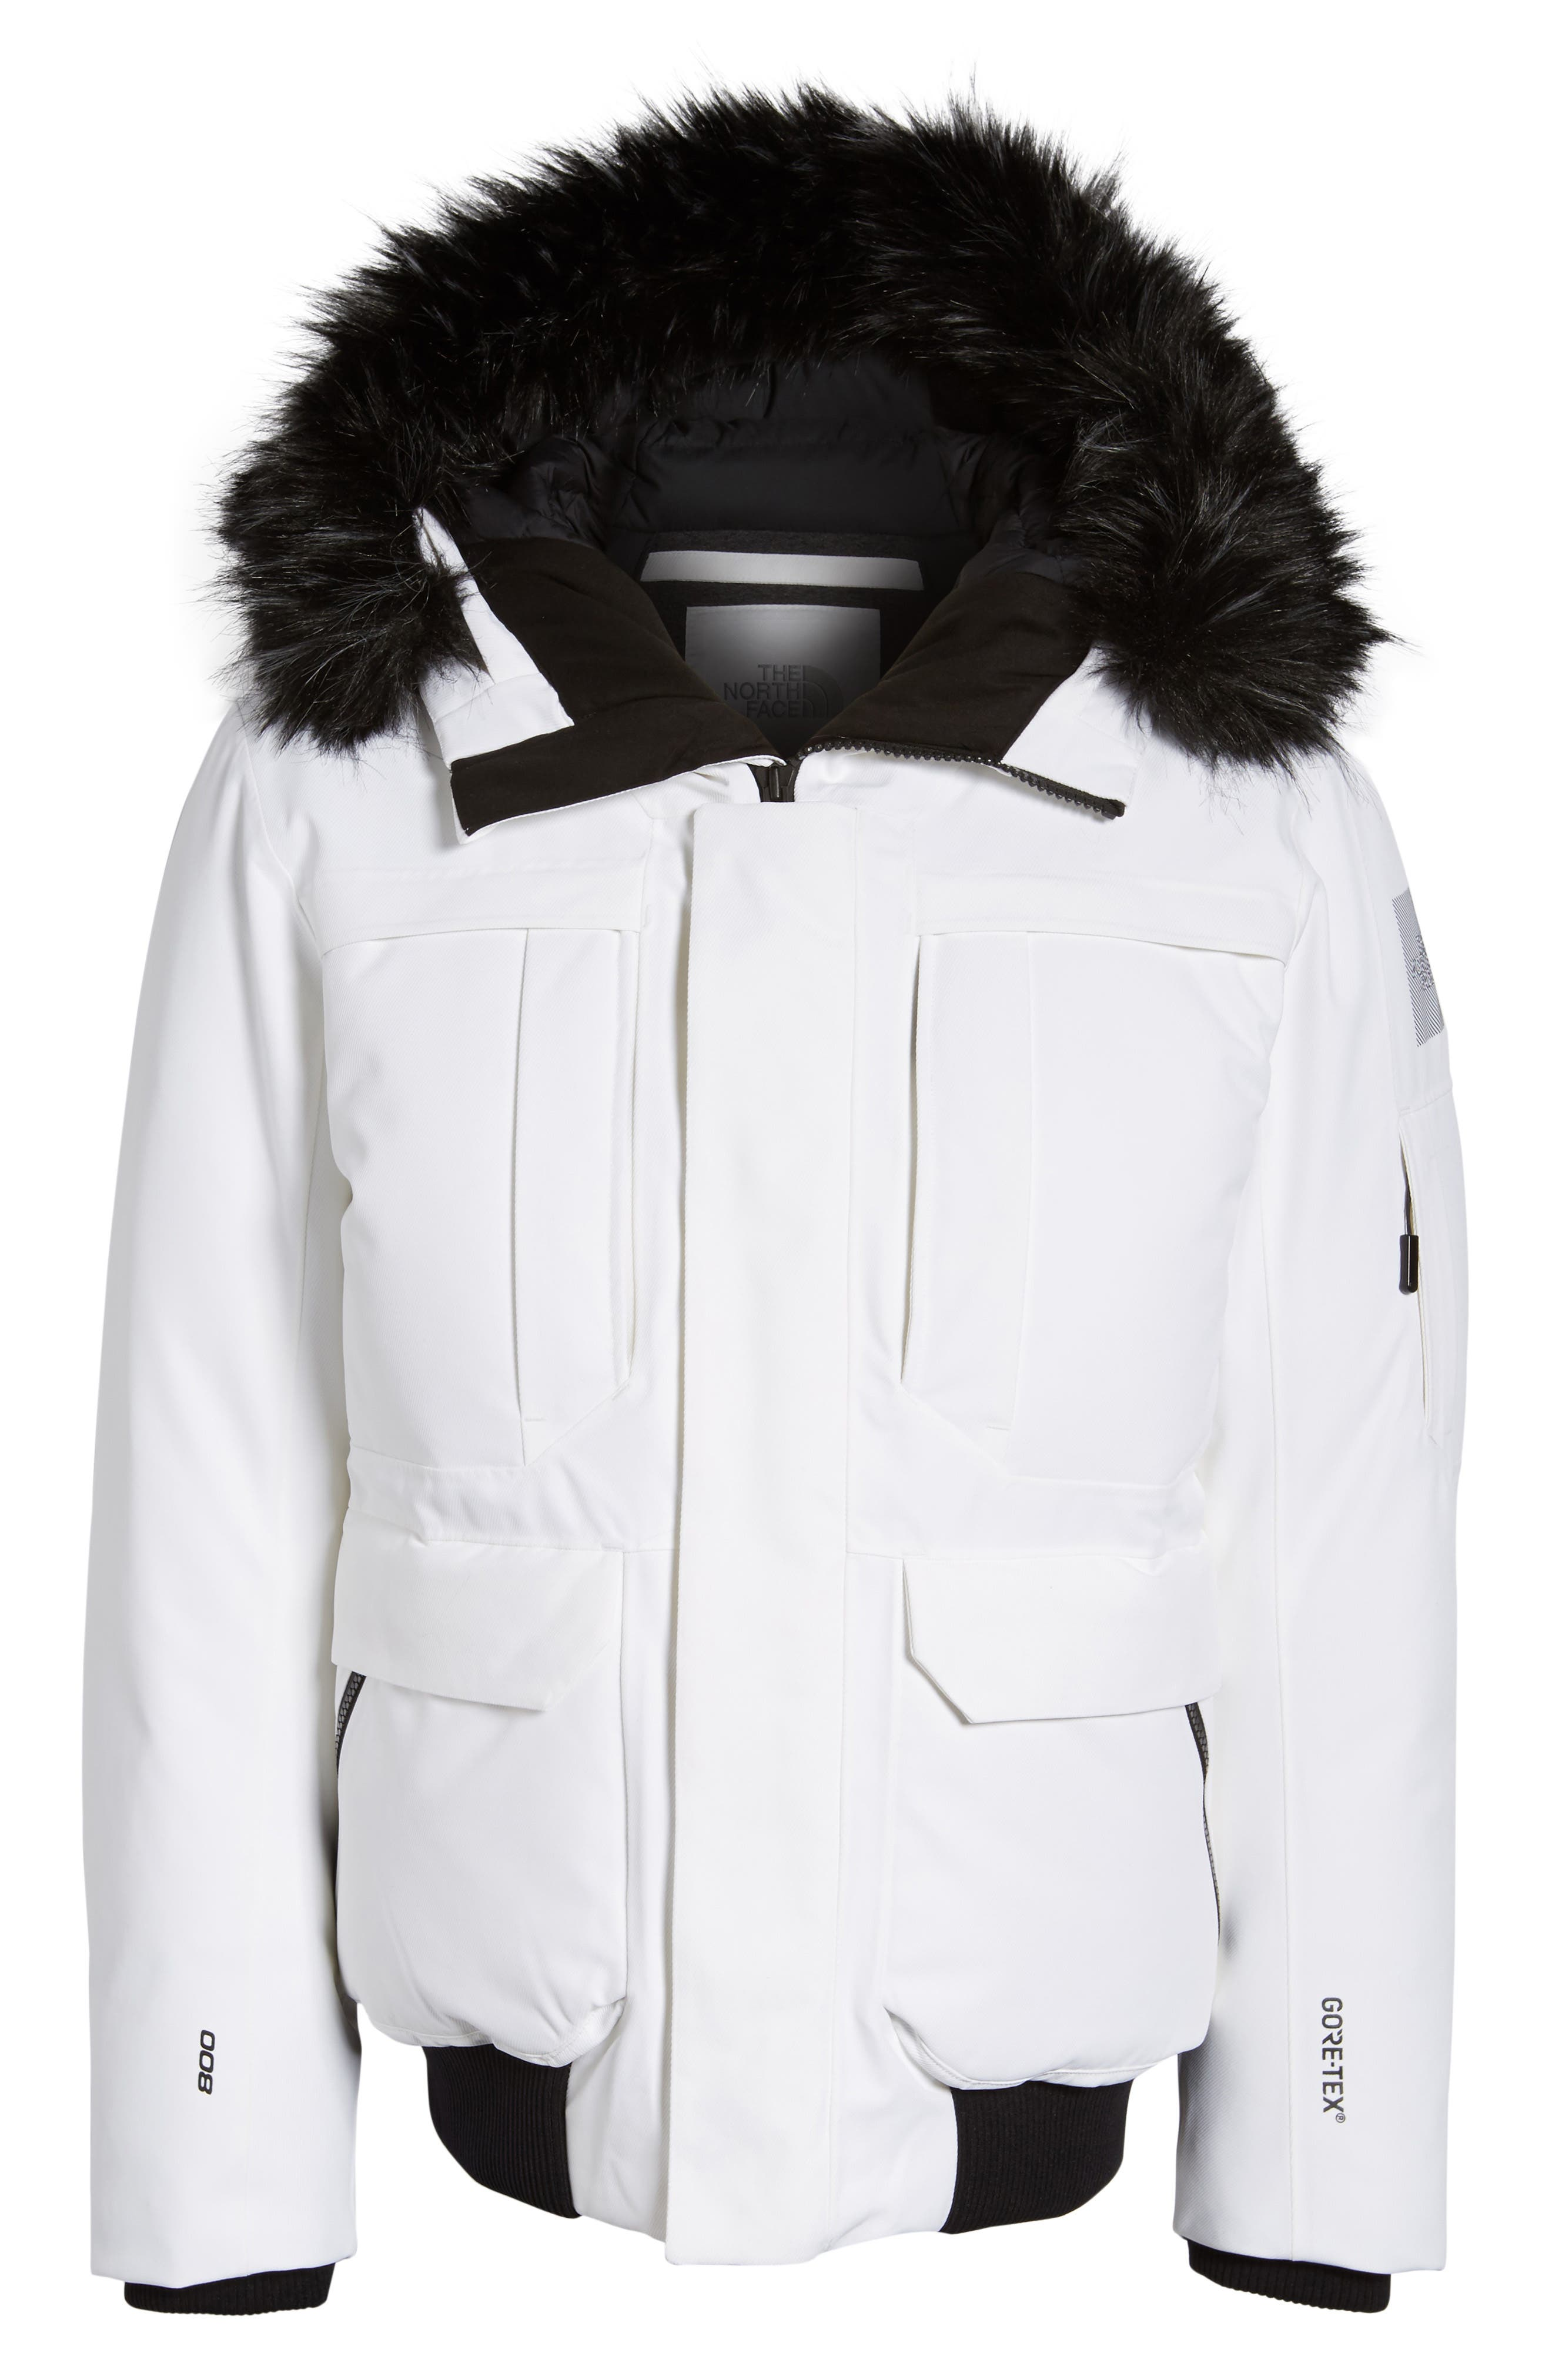 Cryos Expedition Gore-Tex<sup>®</sup> Bomber Jacket,                             Alternate thumbnail 15, color,